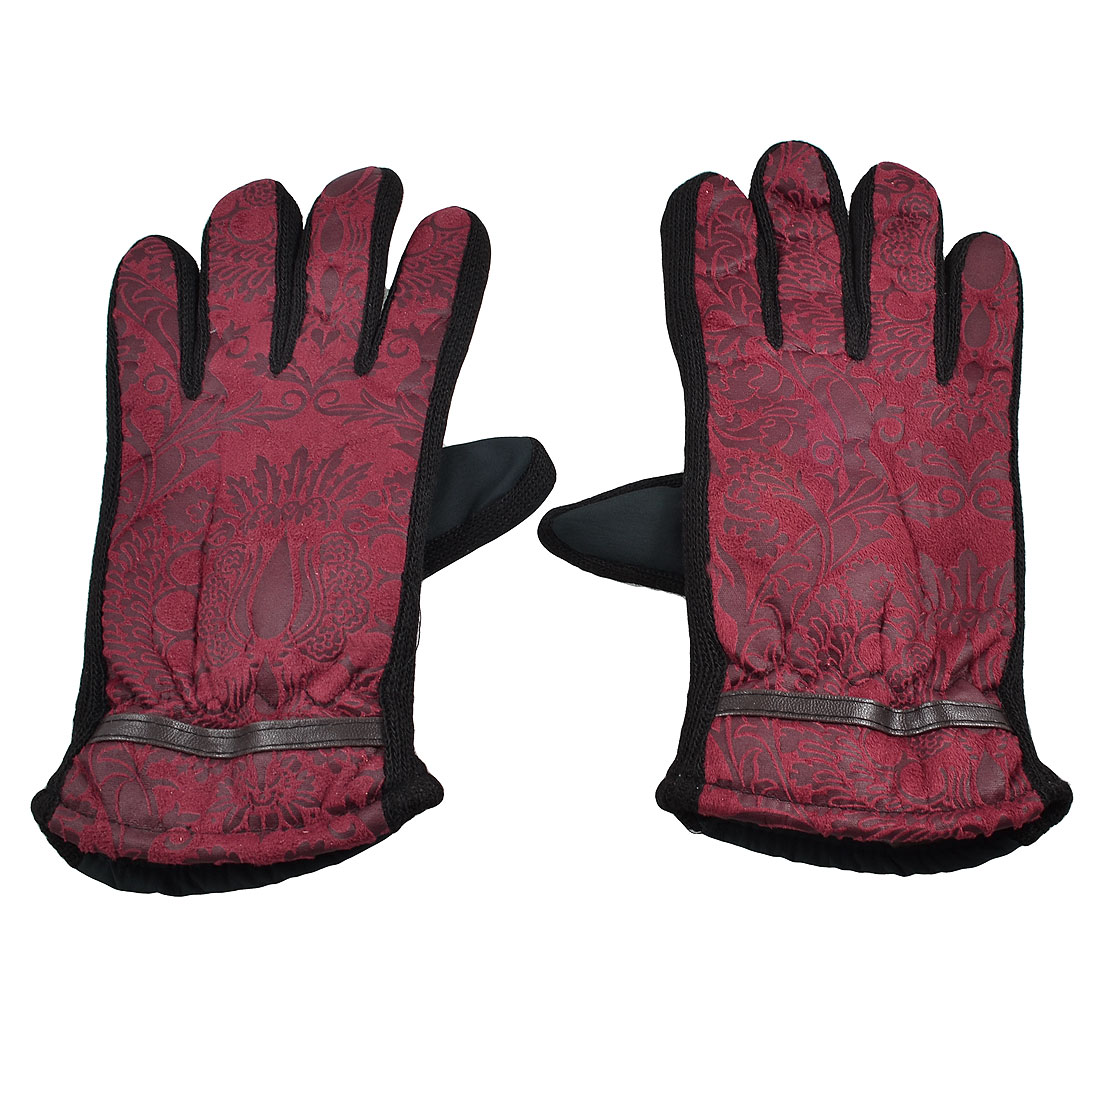 Women Pair Floral Cotton Blends Full Fingers Warm Winter Gloves Fuchsia Dark Green